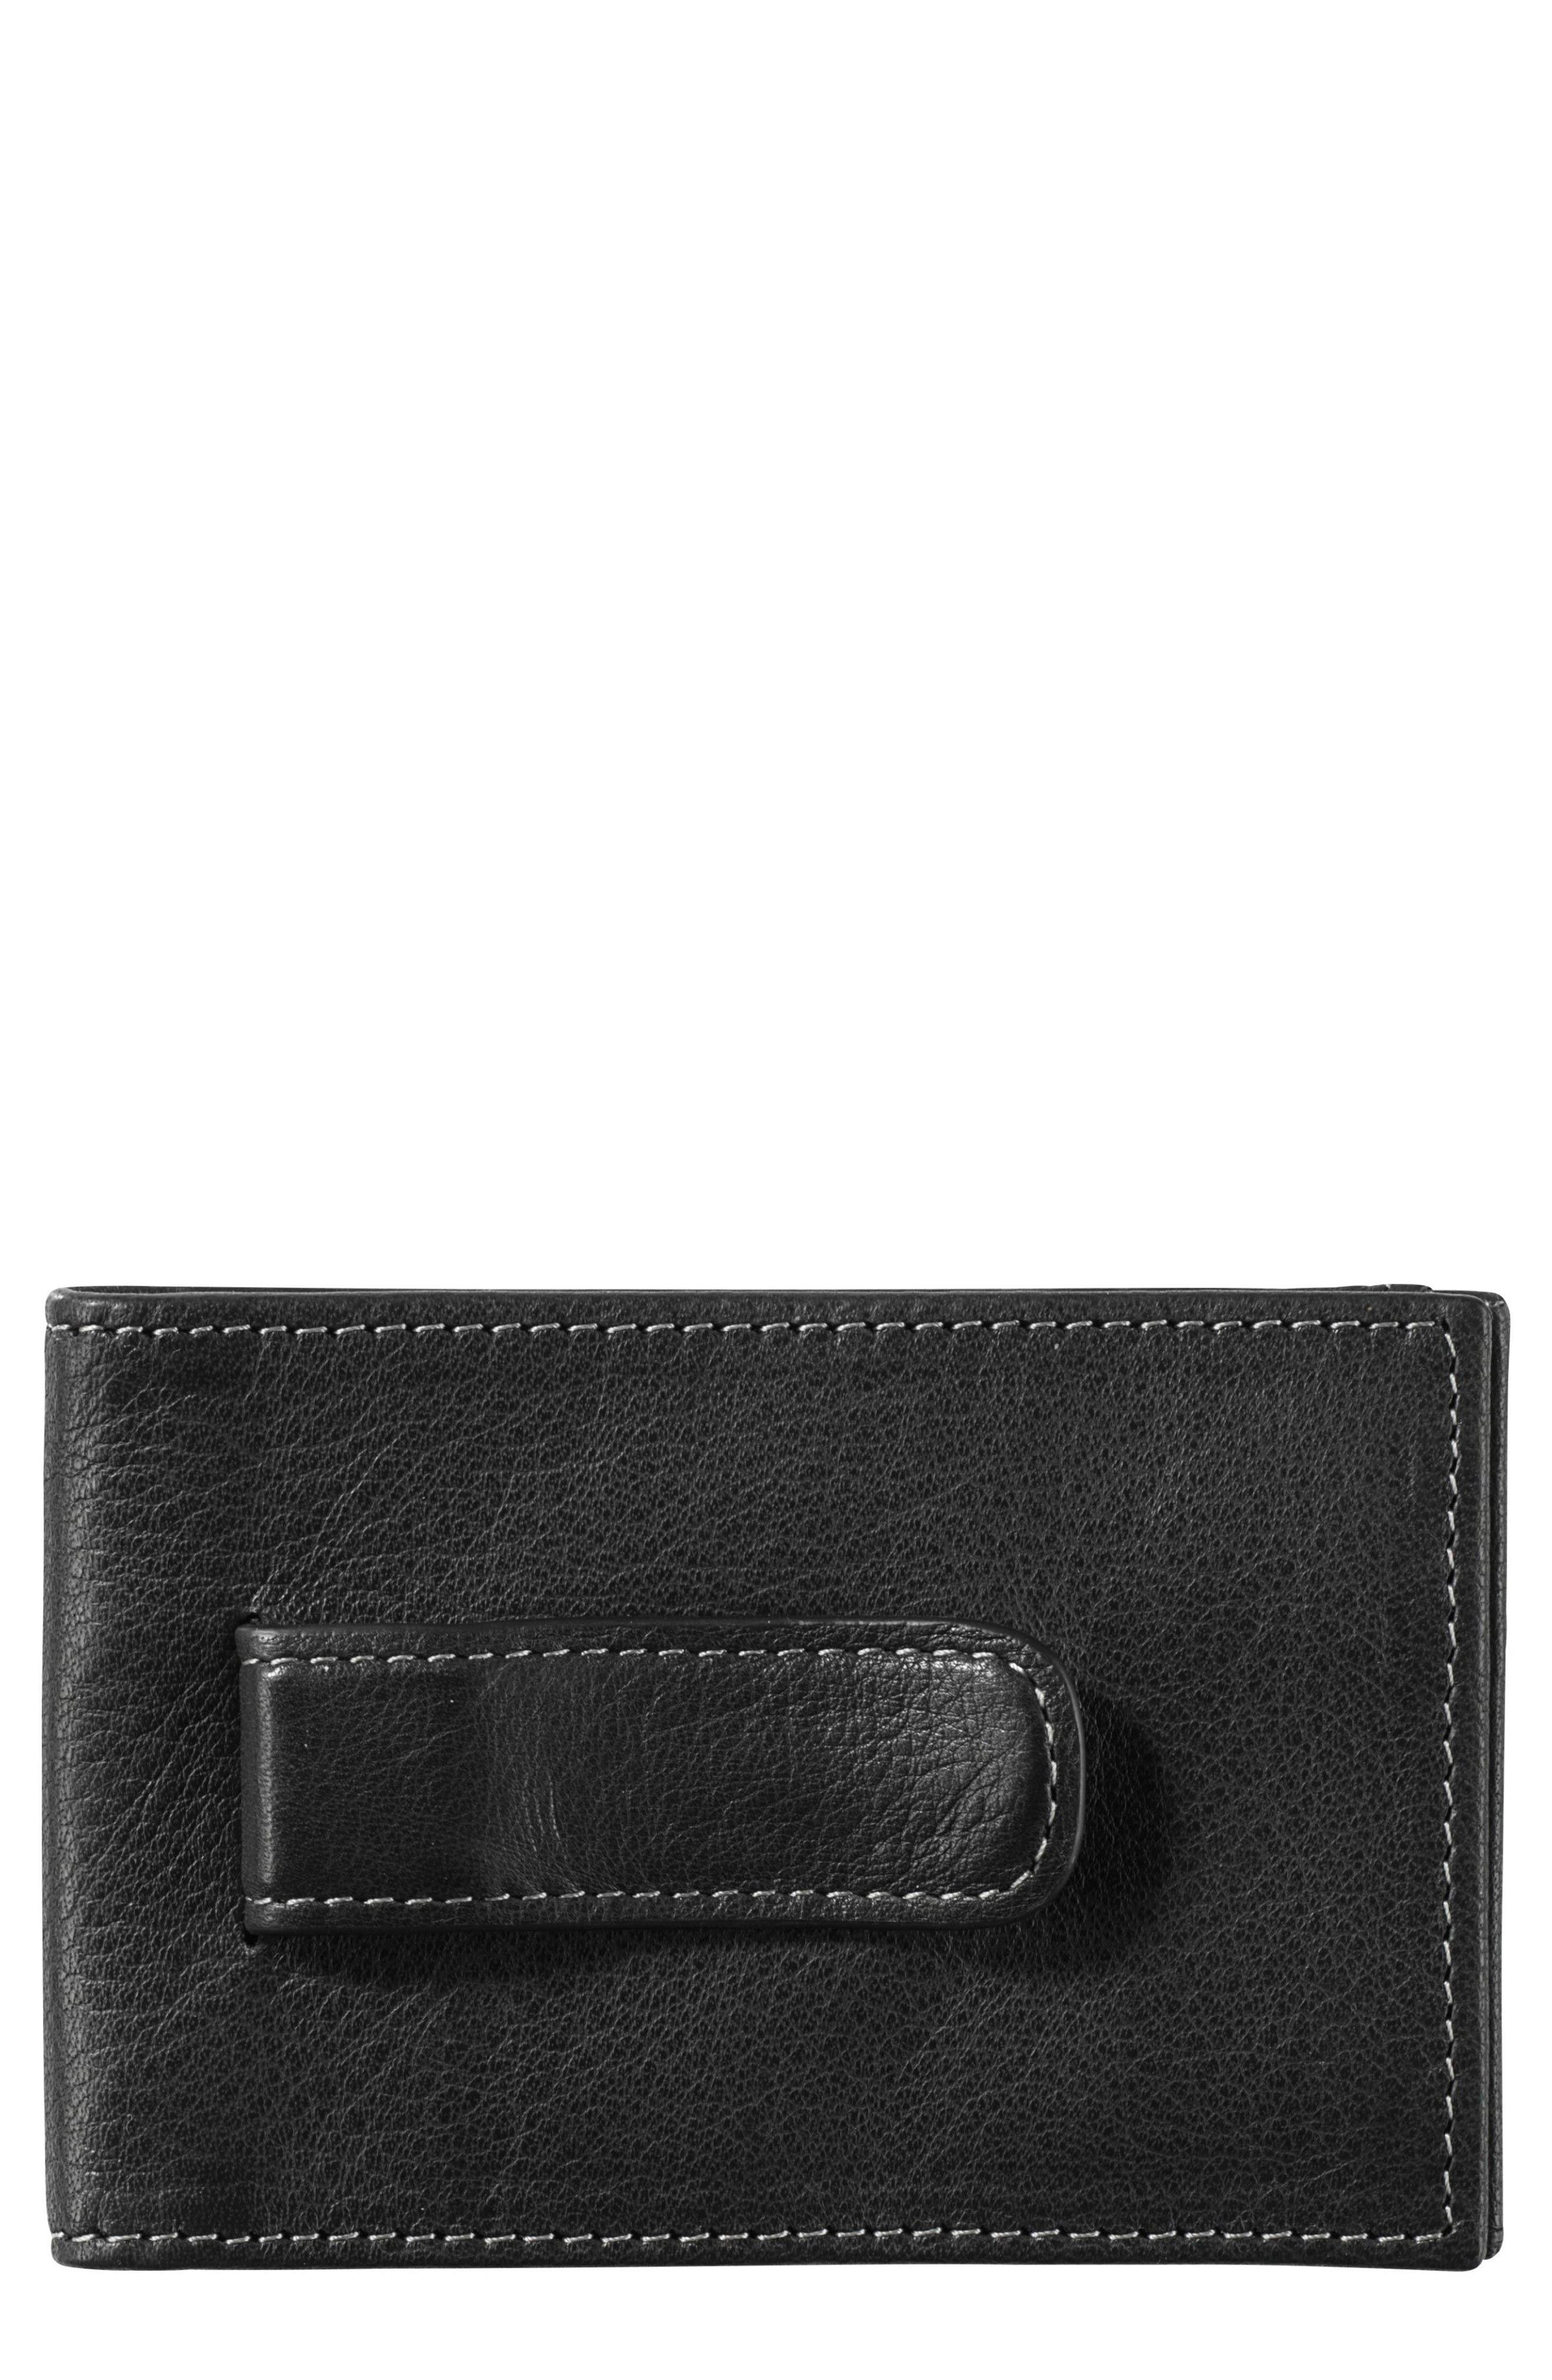 Johnston & Murphy Leather Money Clip Wallet